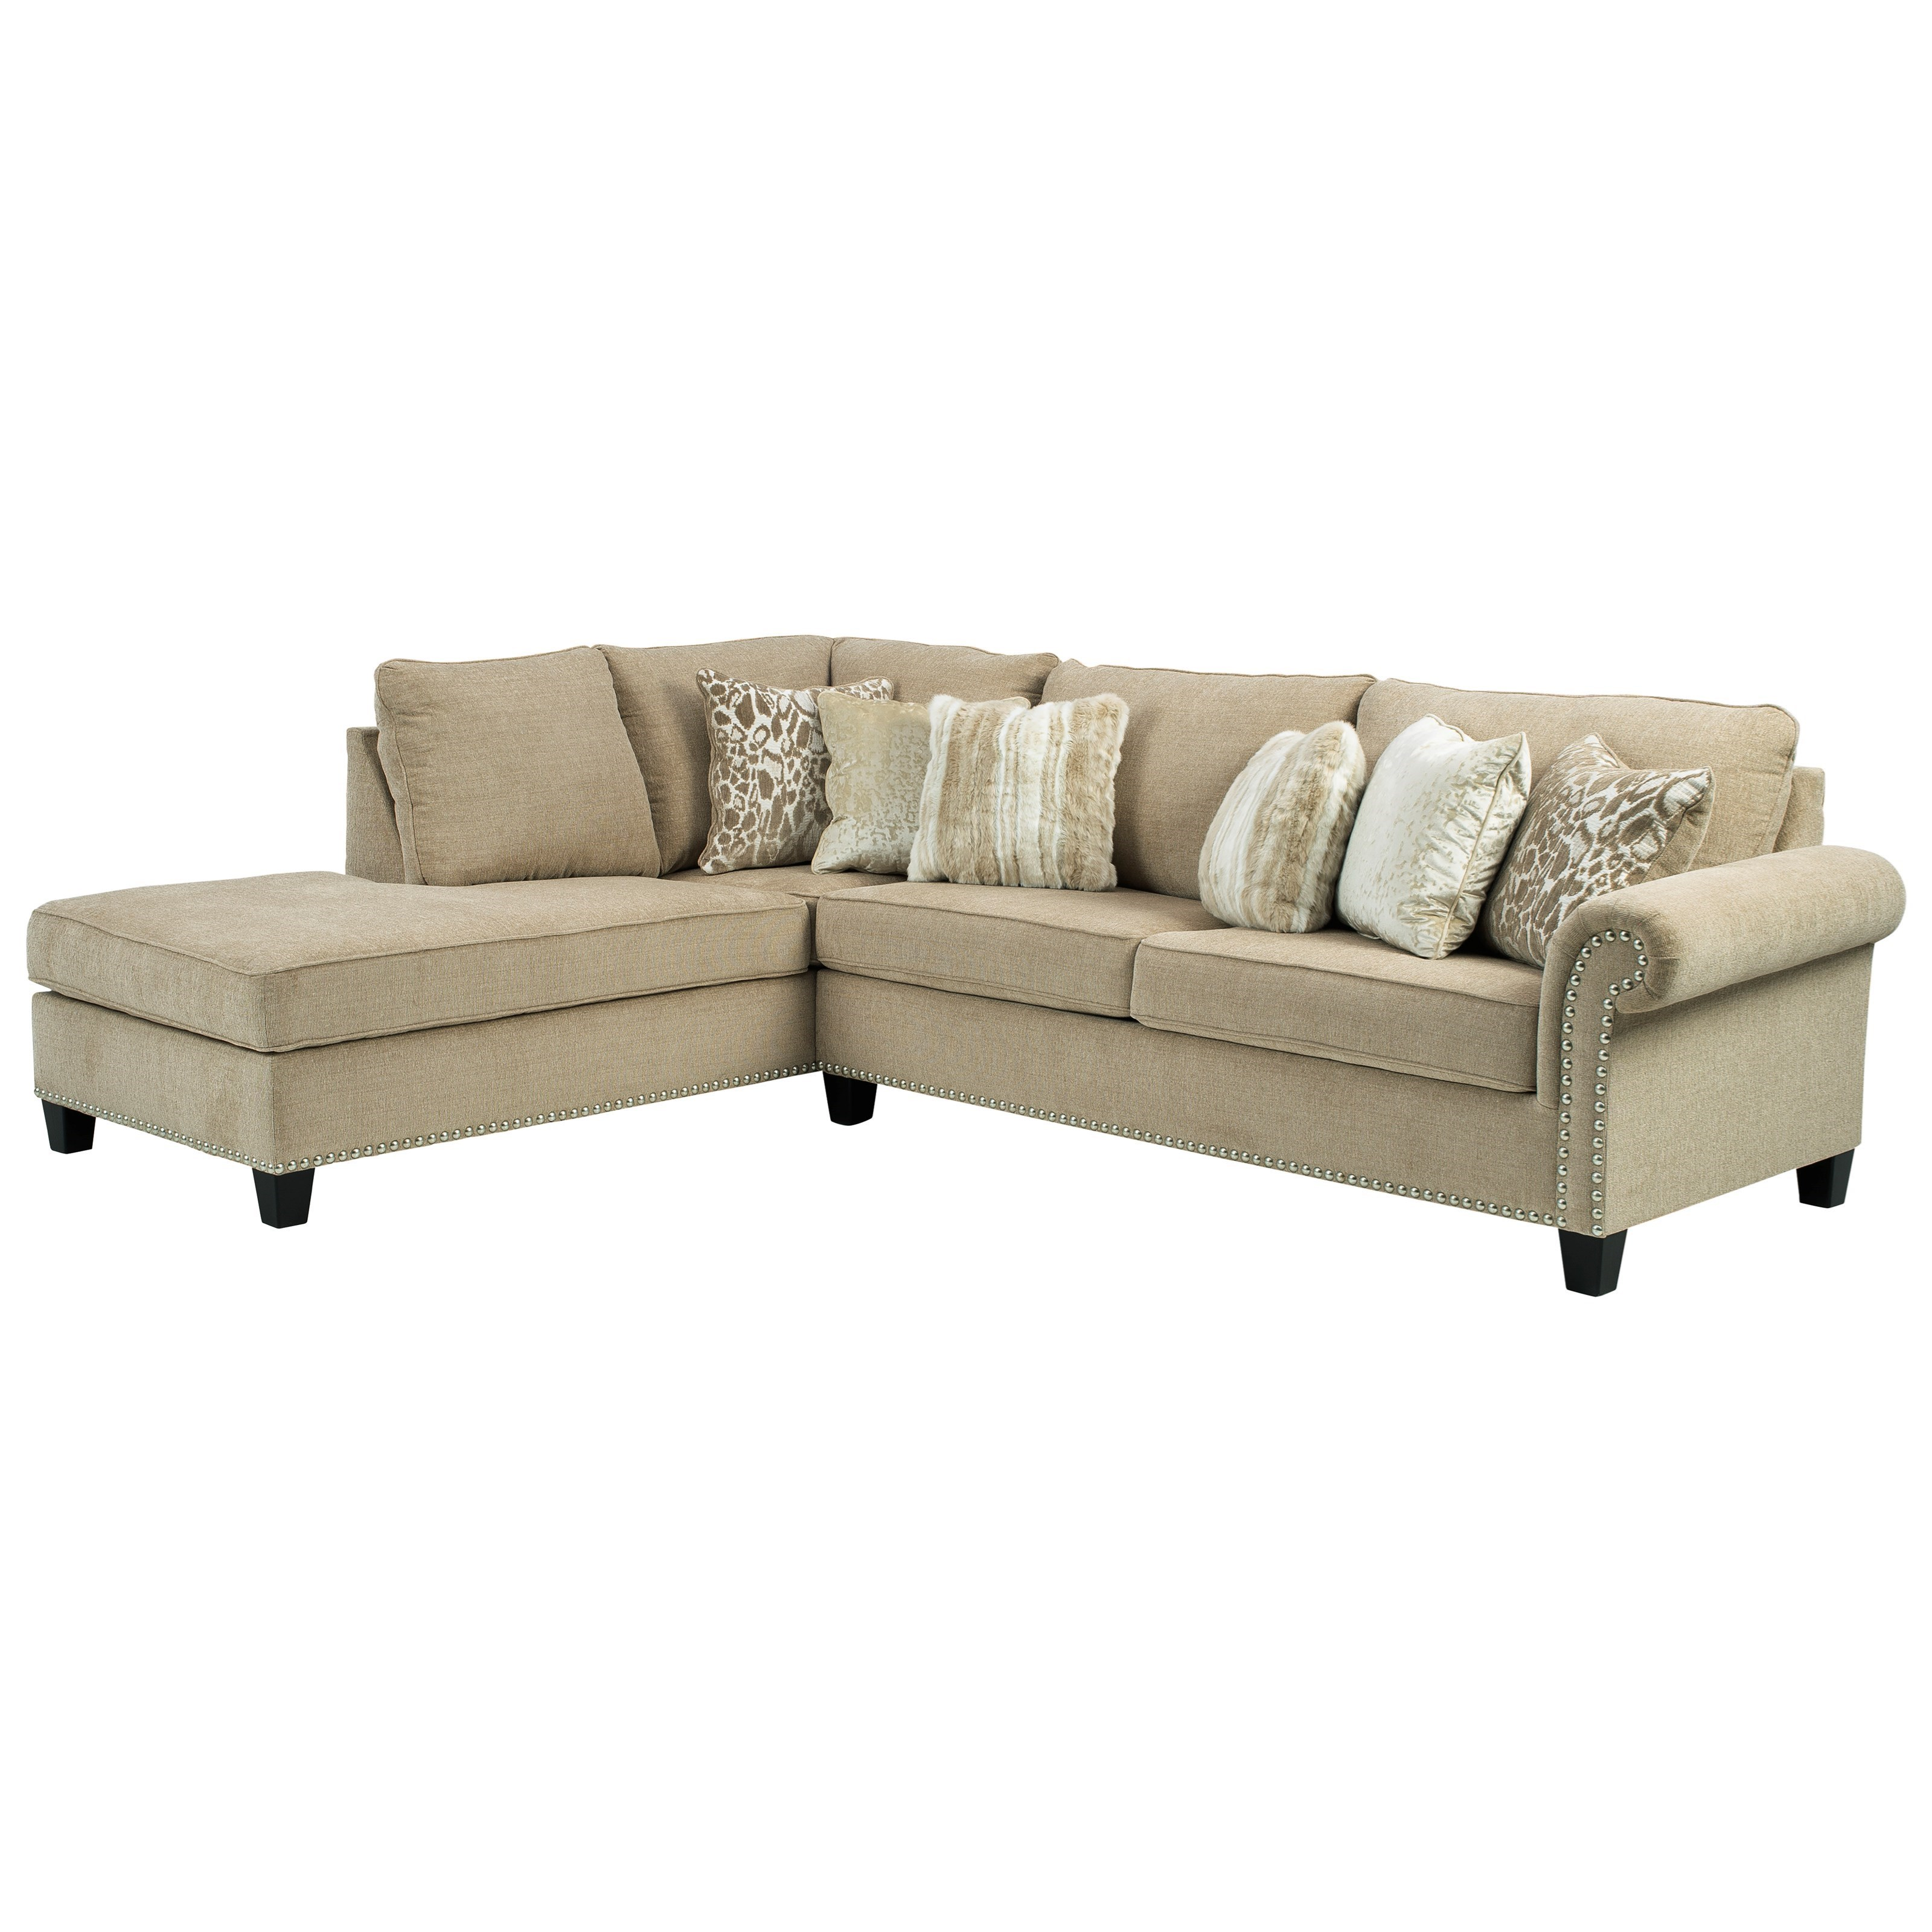 Dovemont 2-Piece Sectional with Left Chaise by Ashley (Signature Design) at Johnny Janosik